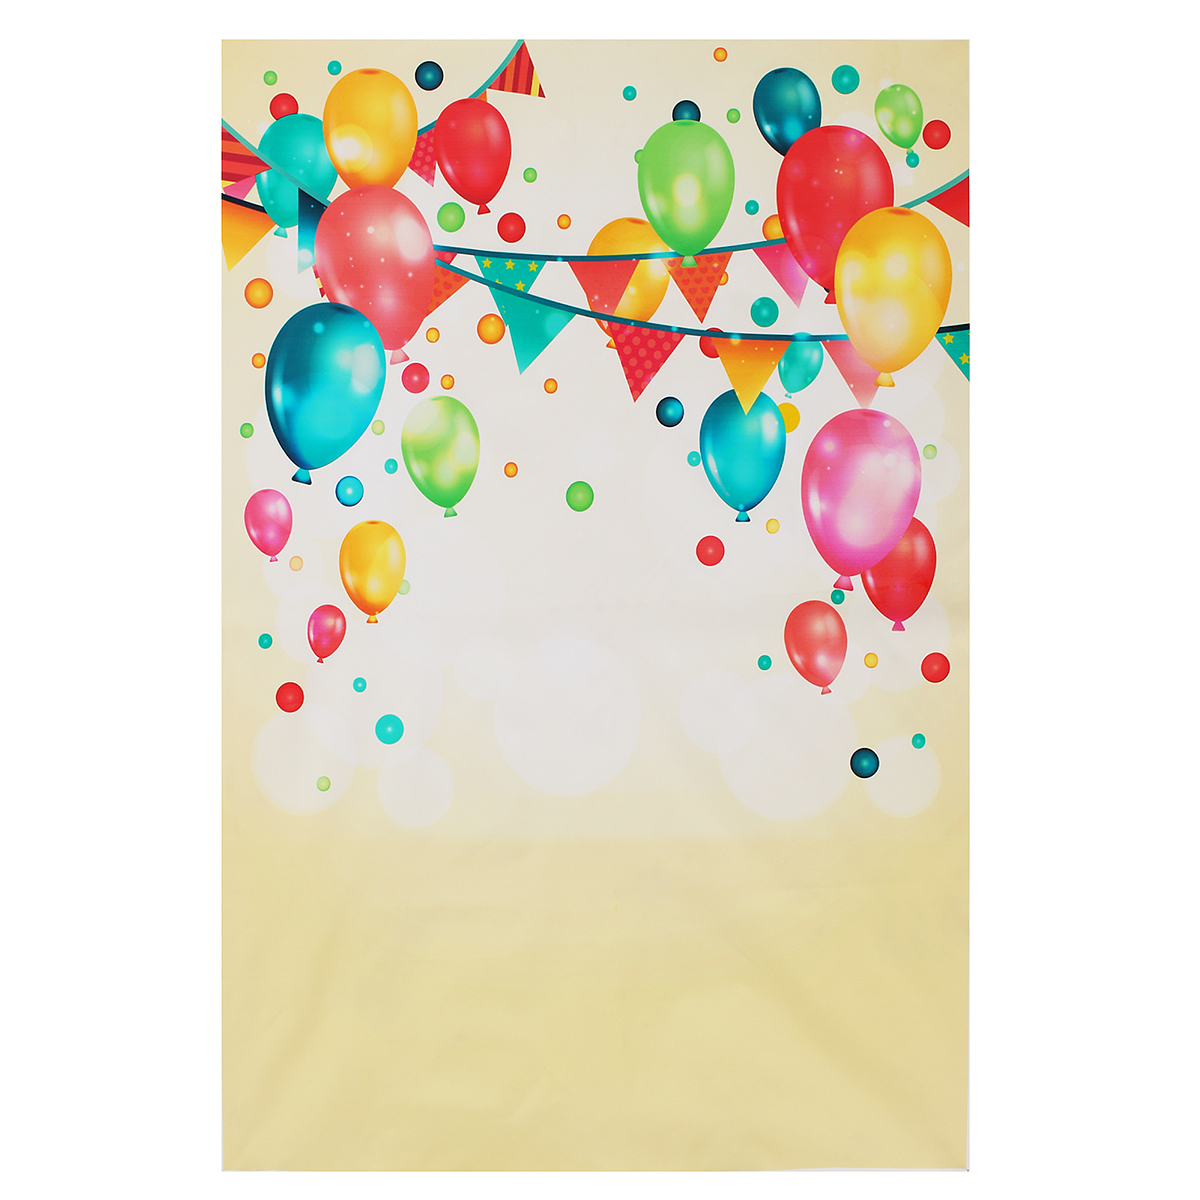 Colorful Balloon Kids Party Celebration Photography Backdrop Wall Art Hanging Photo Background